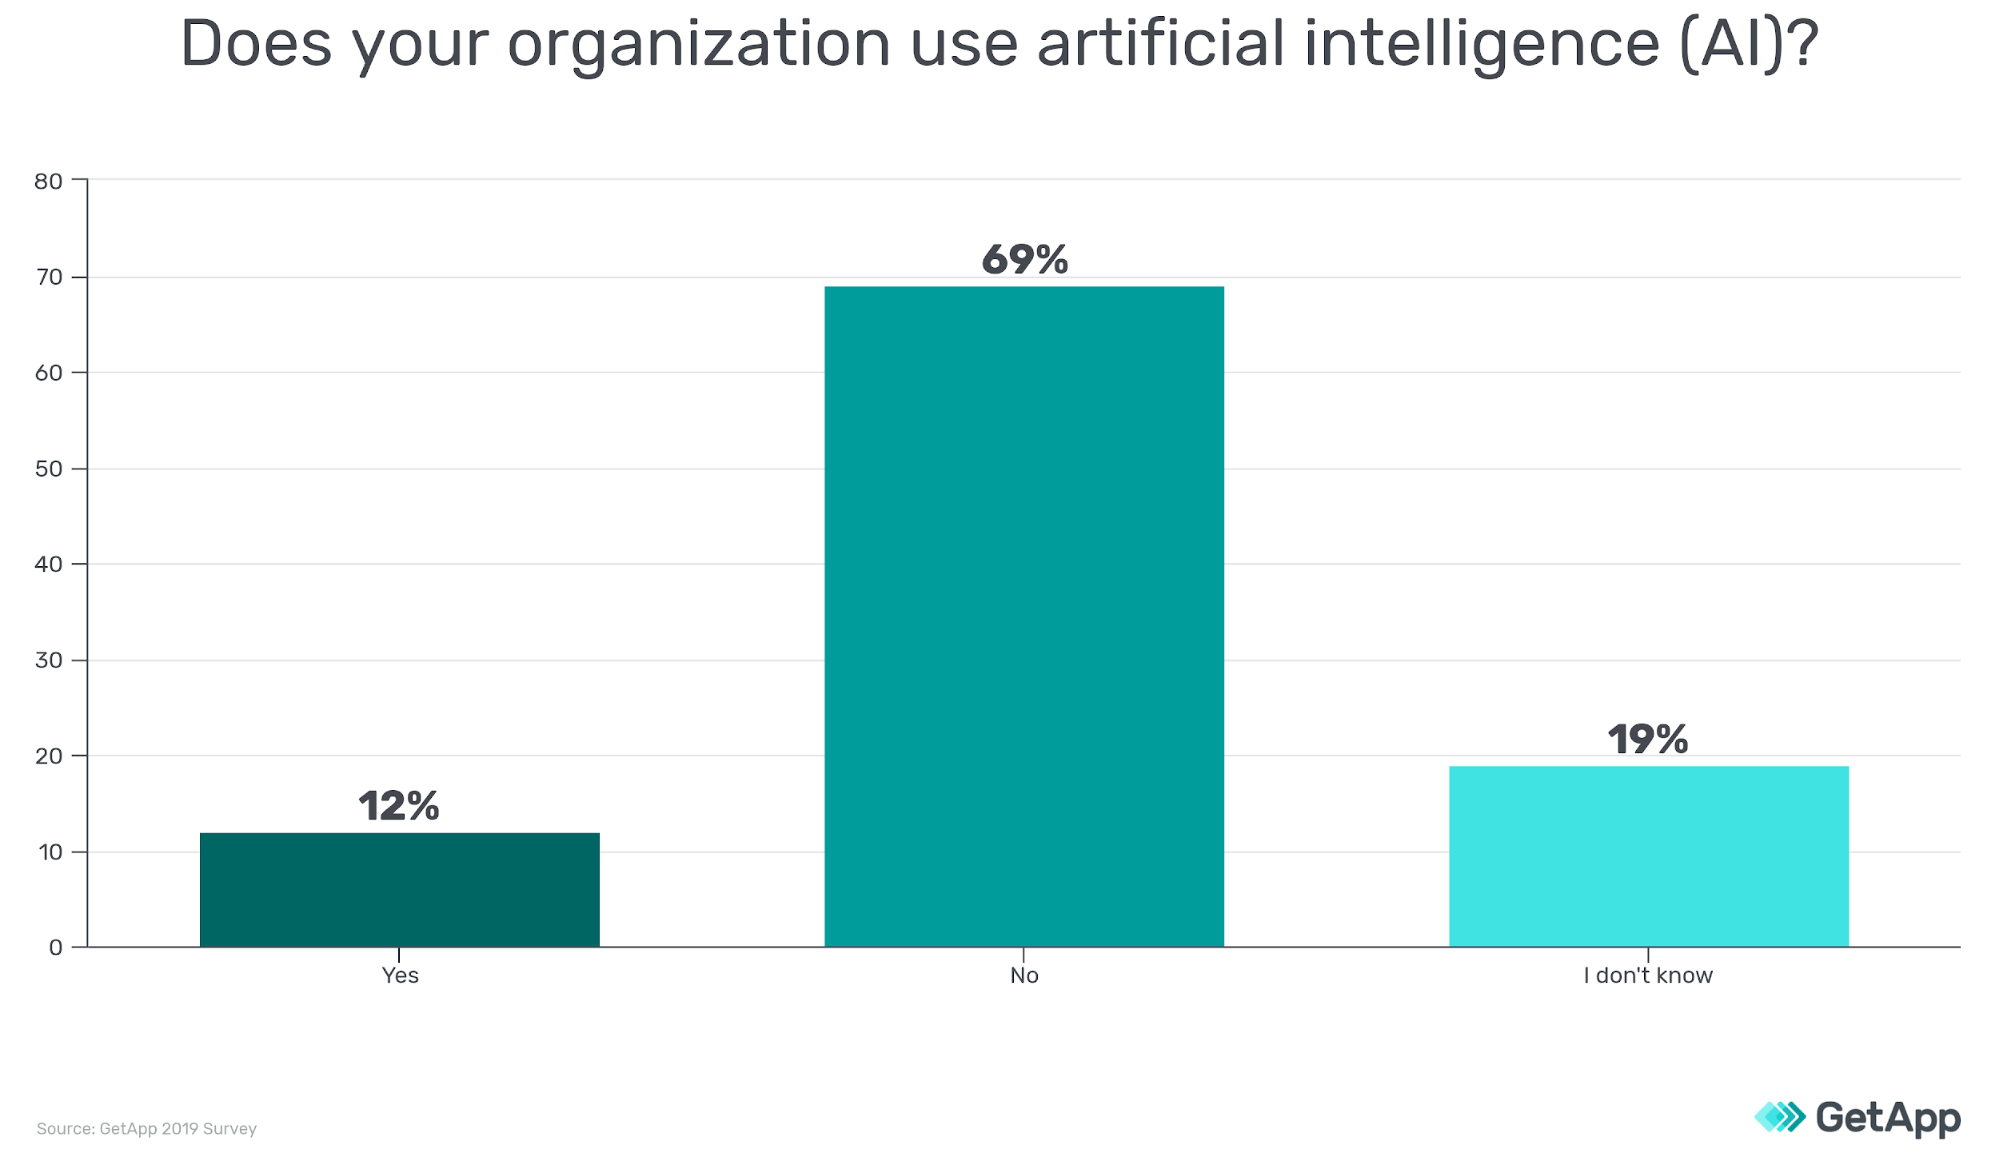 Survey showing the percentage of organizations that use artificial intelligence